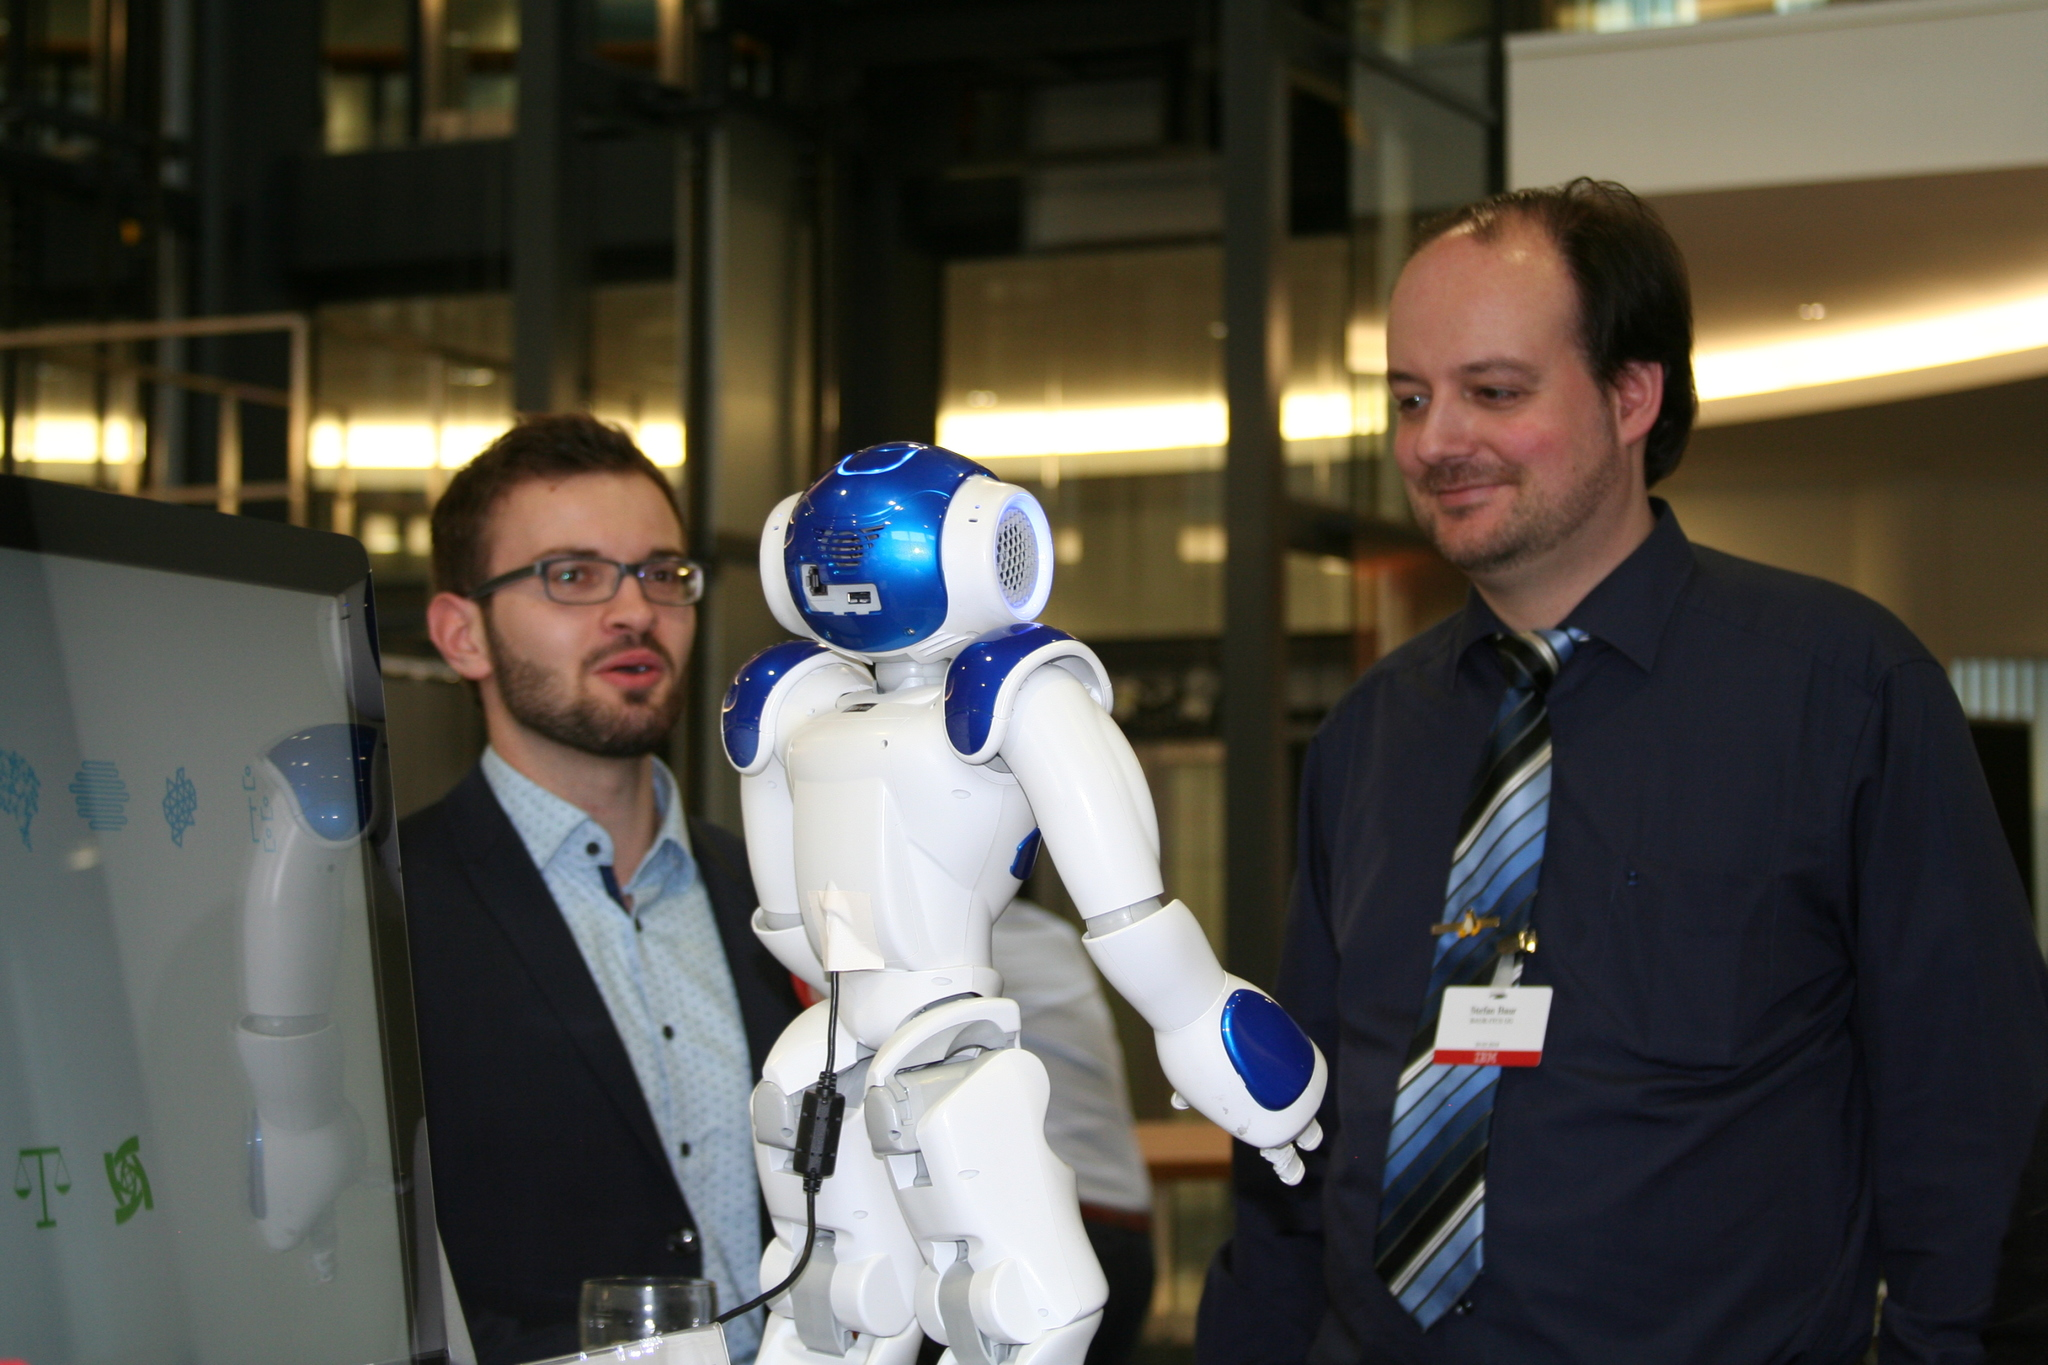 Stefan interacting with a NAO-Bot named Marvin